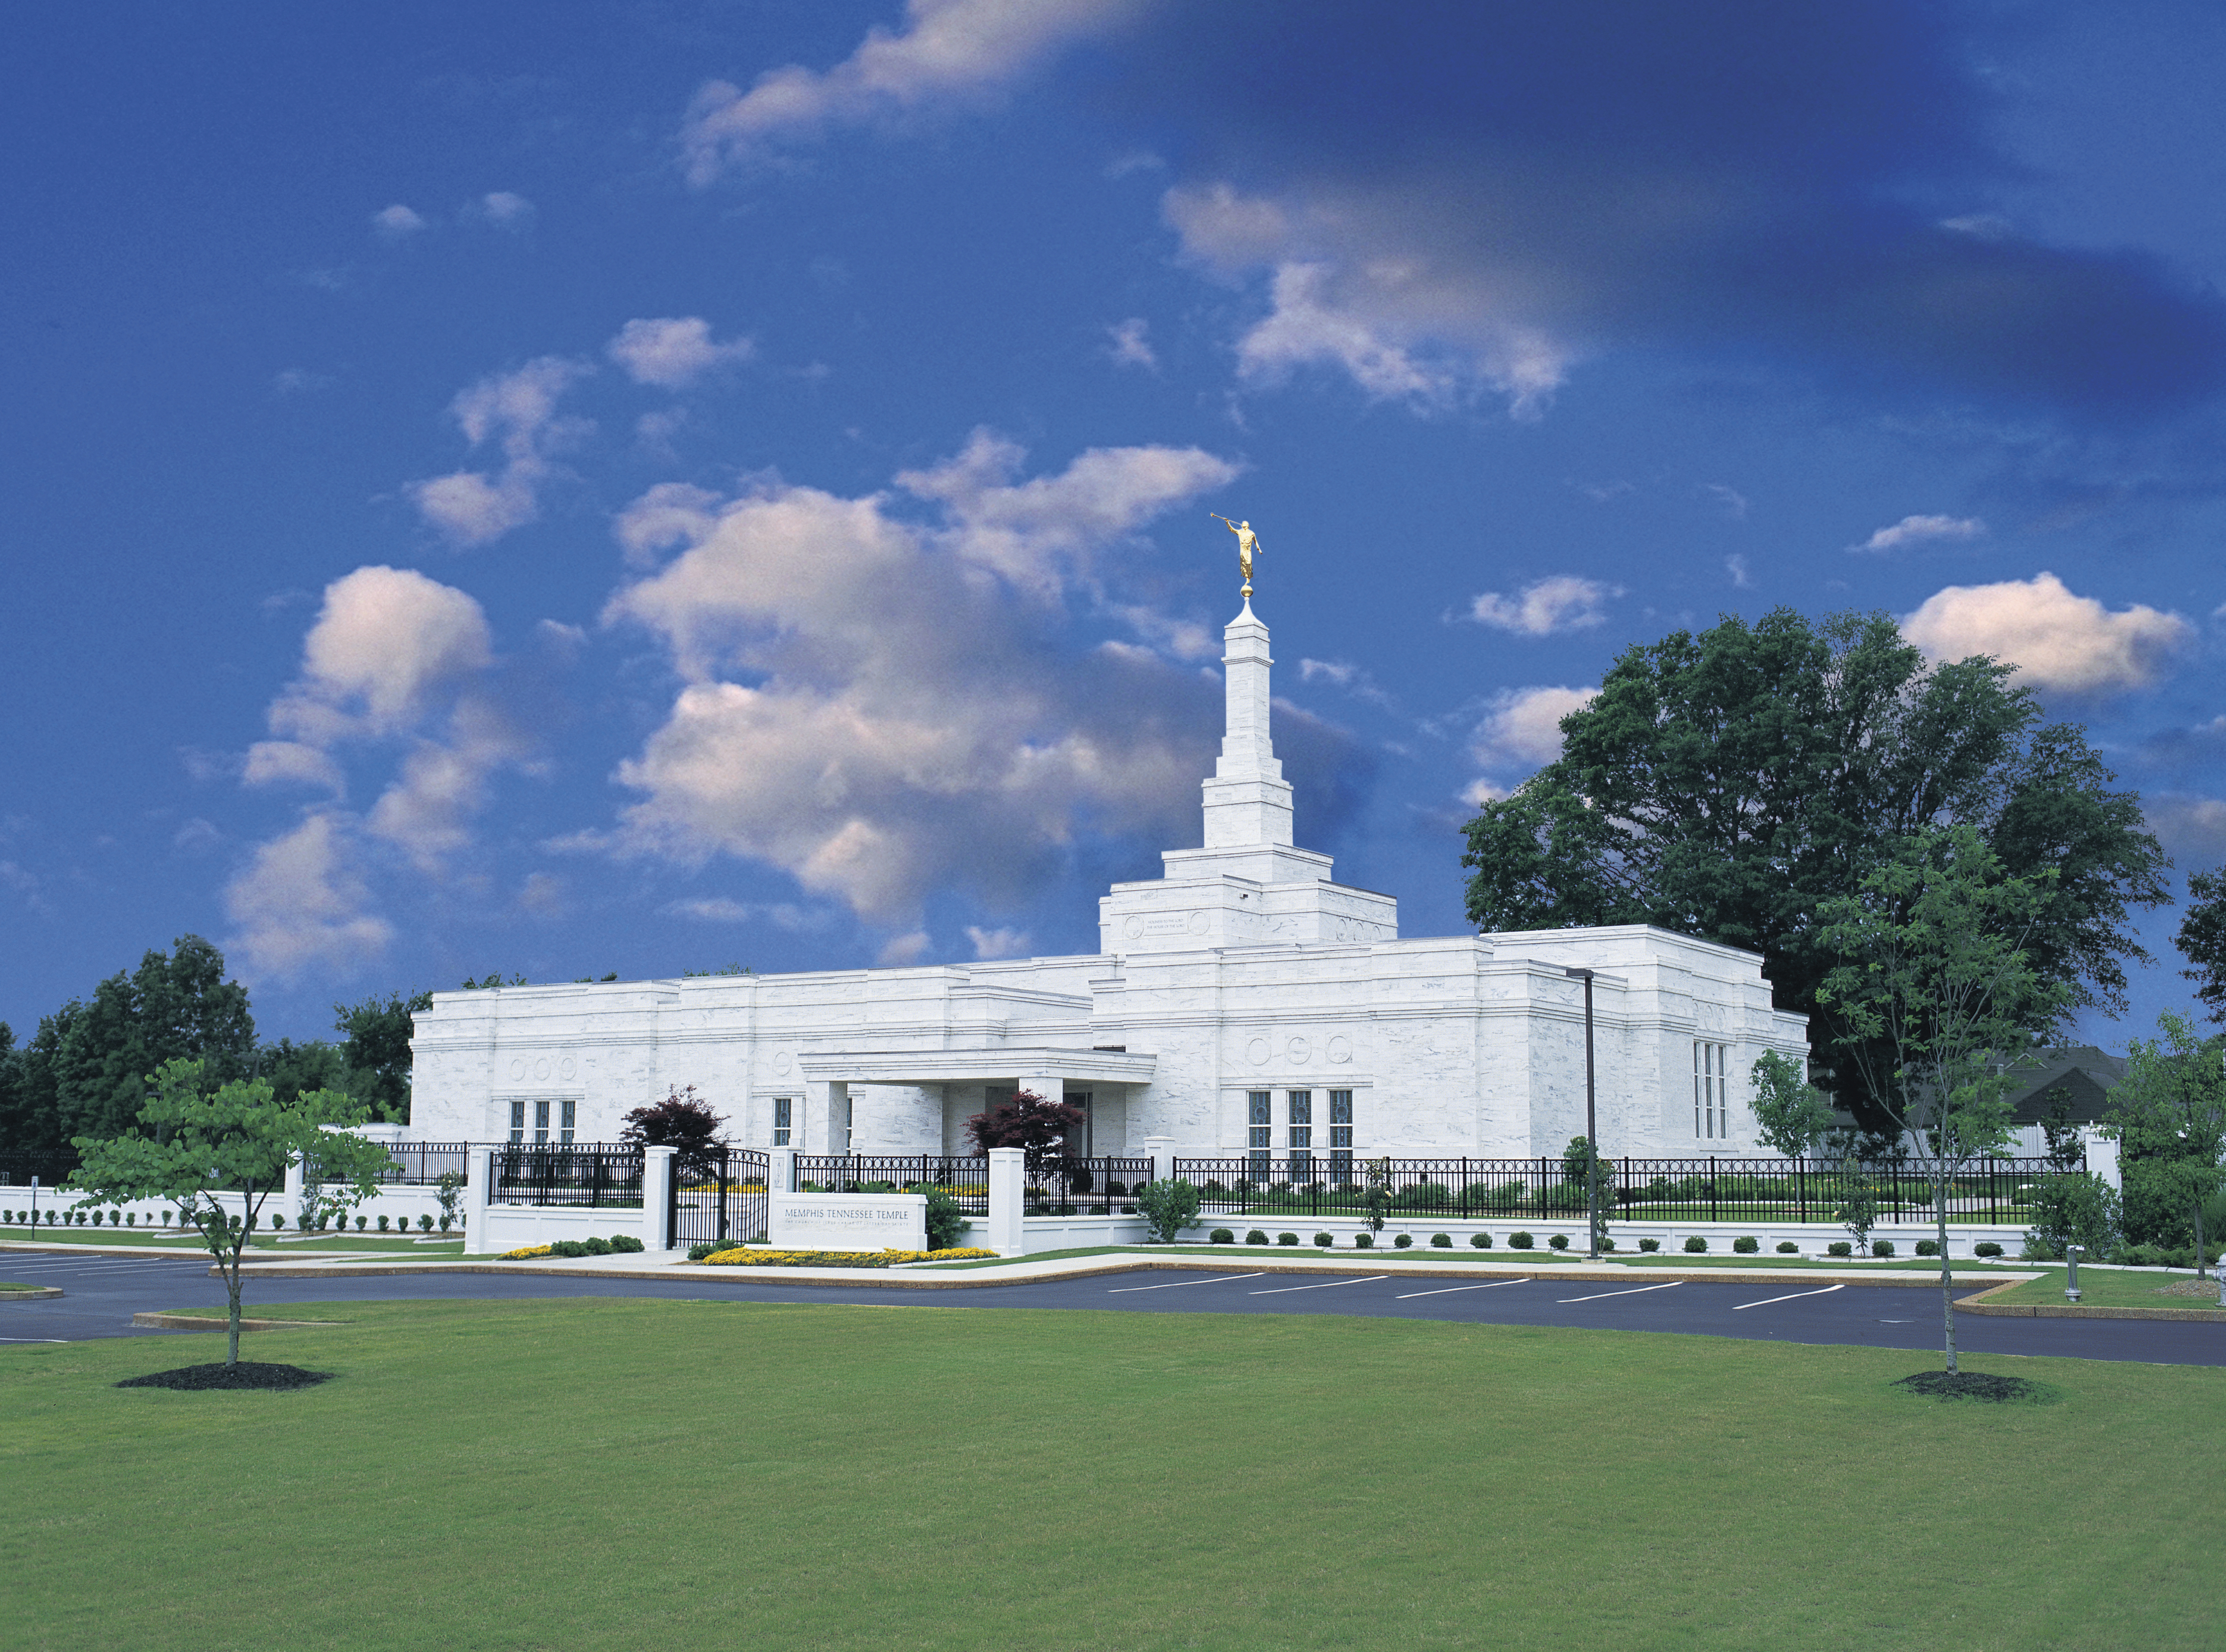 The Memphis Tennessee Temple, including the entrance and scenery.